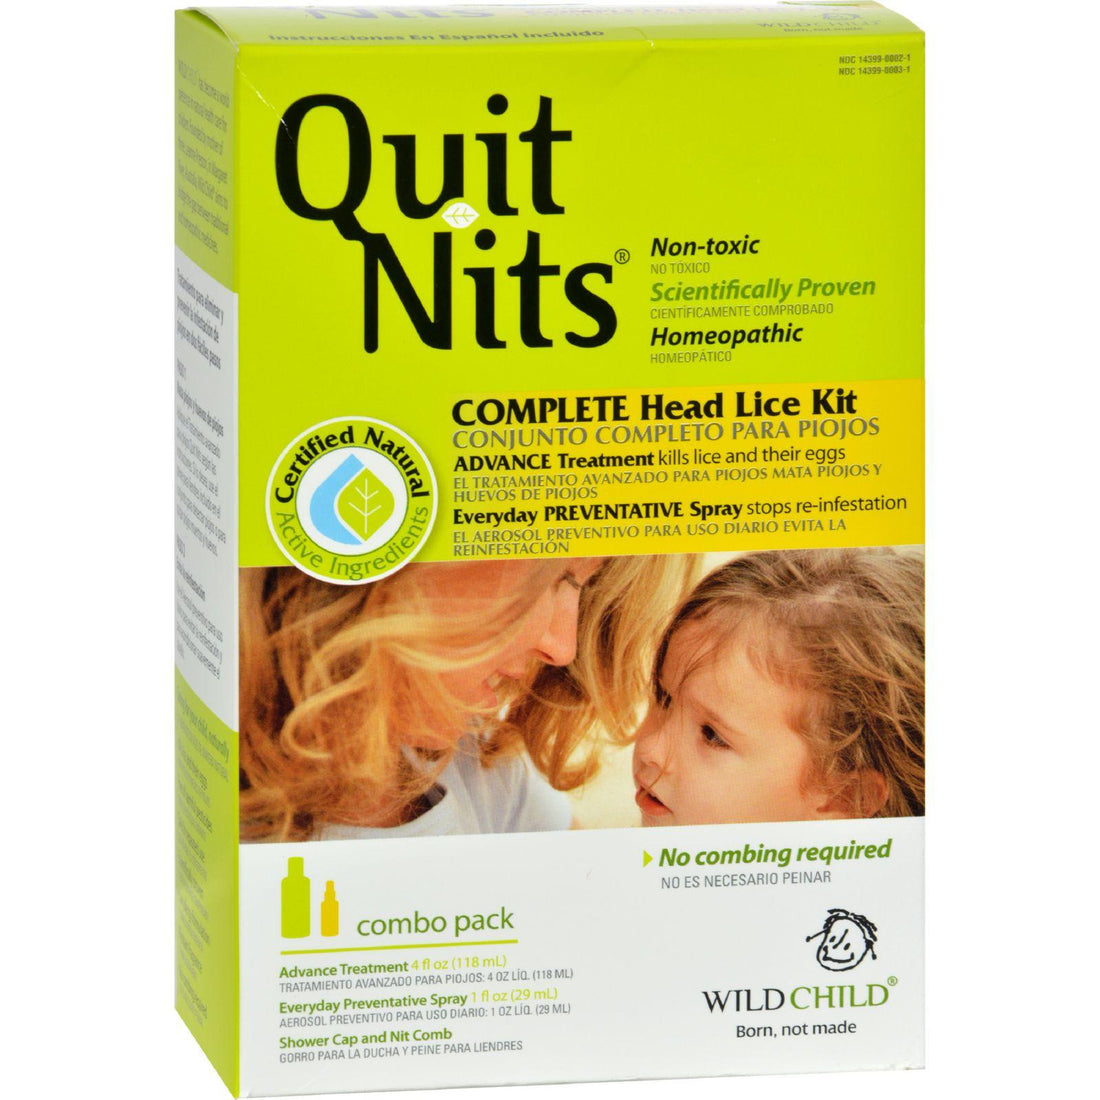 Mother Mantis: Hyland's Quit Nits Complete Head Lice Kit Hyland's